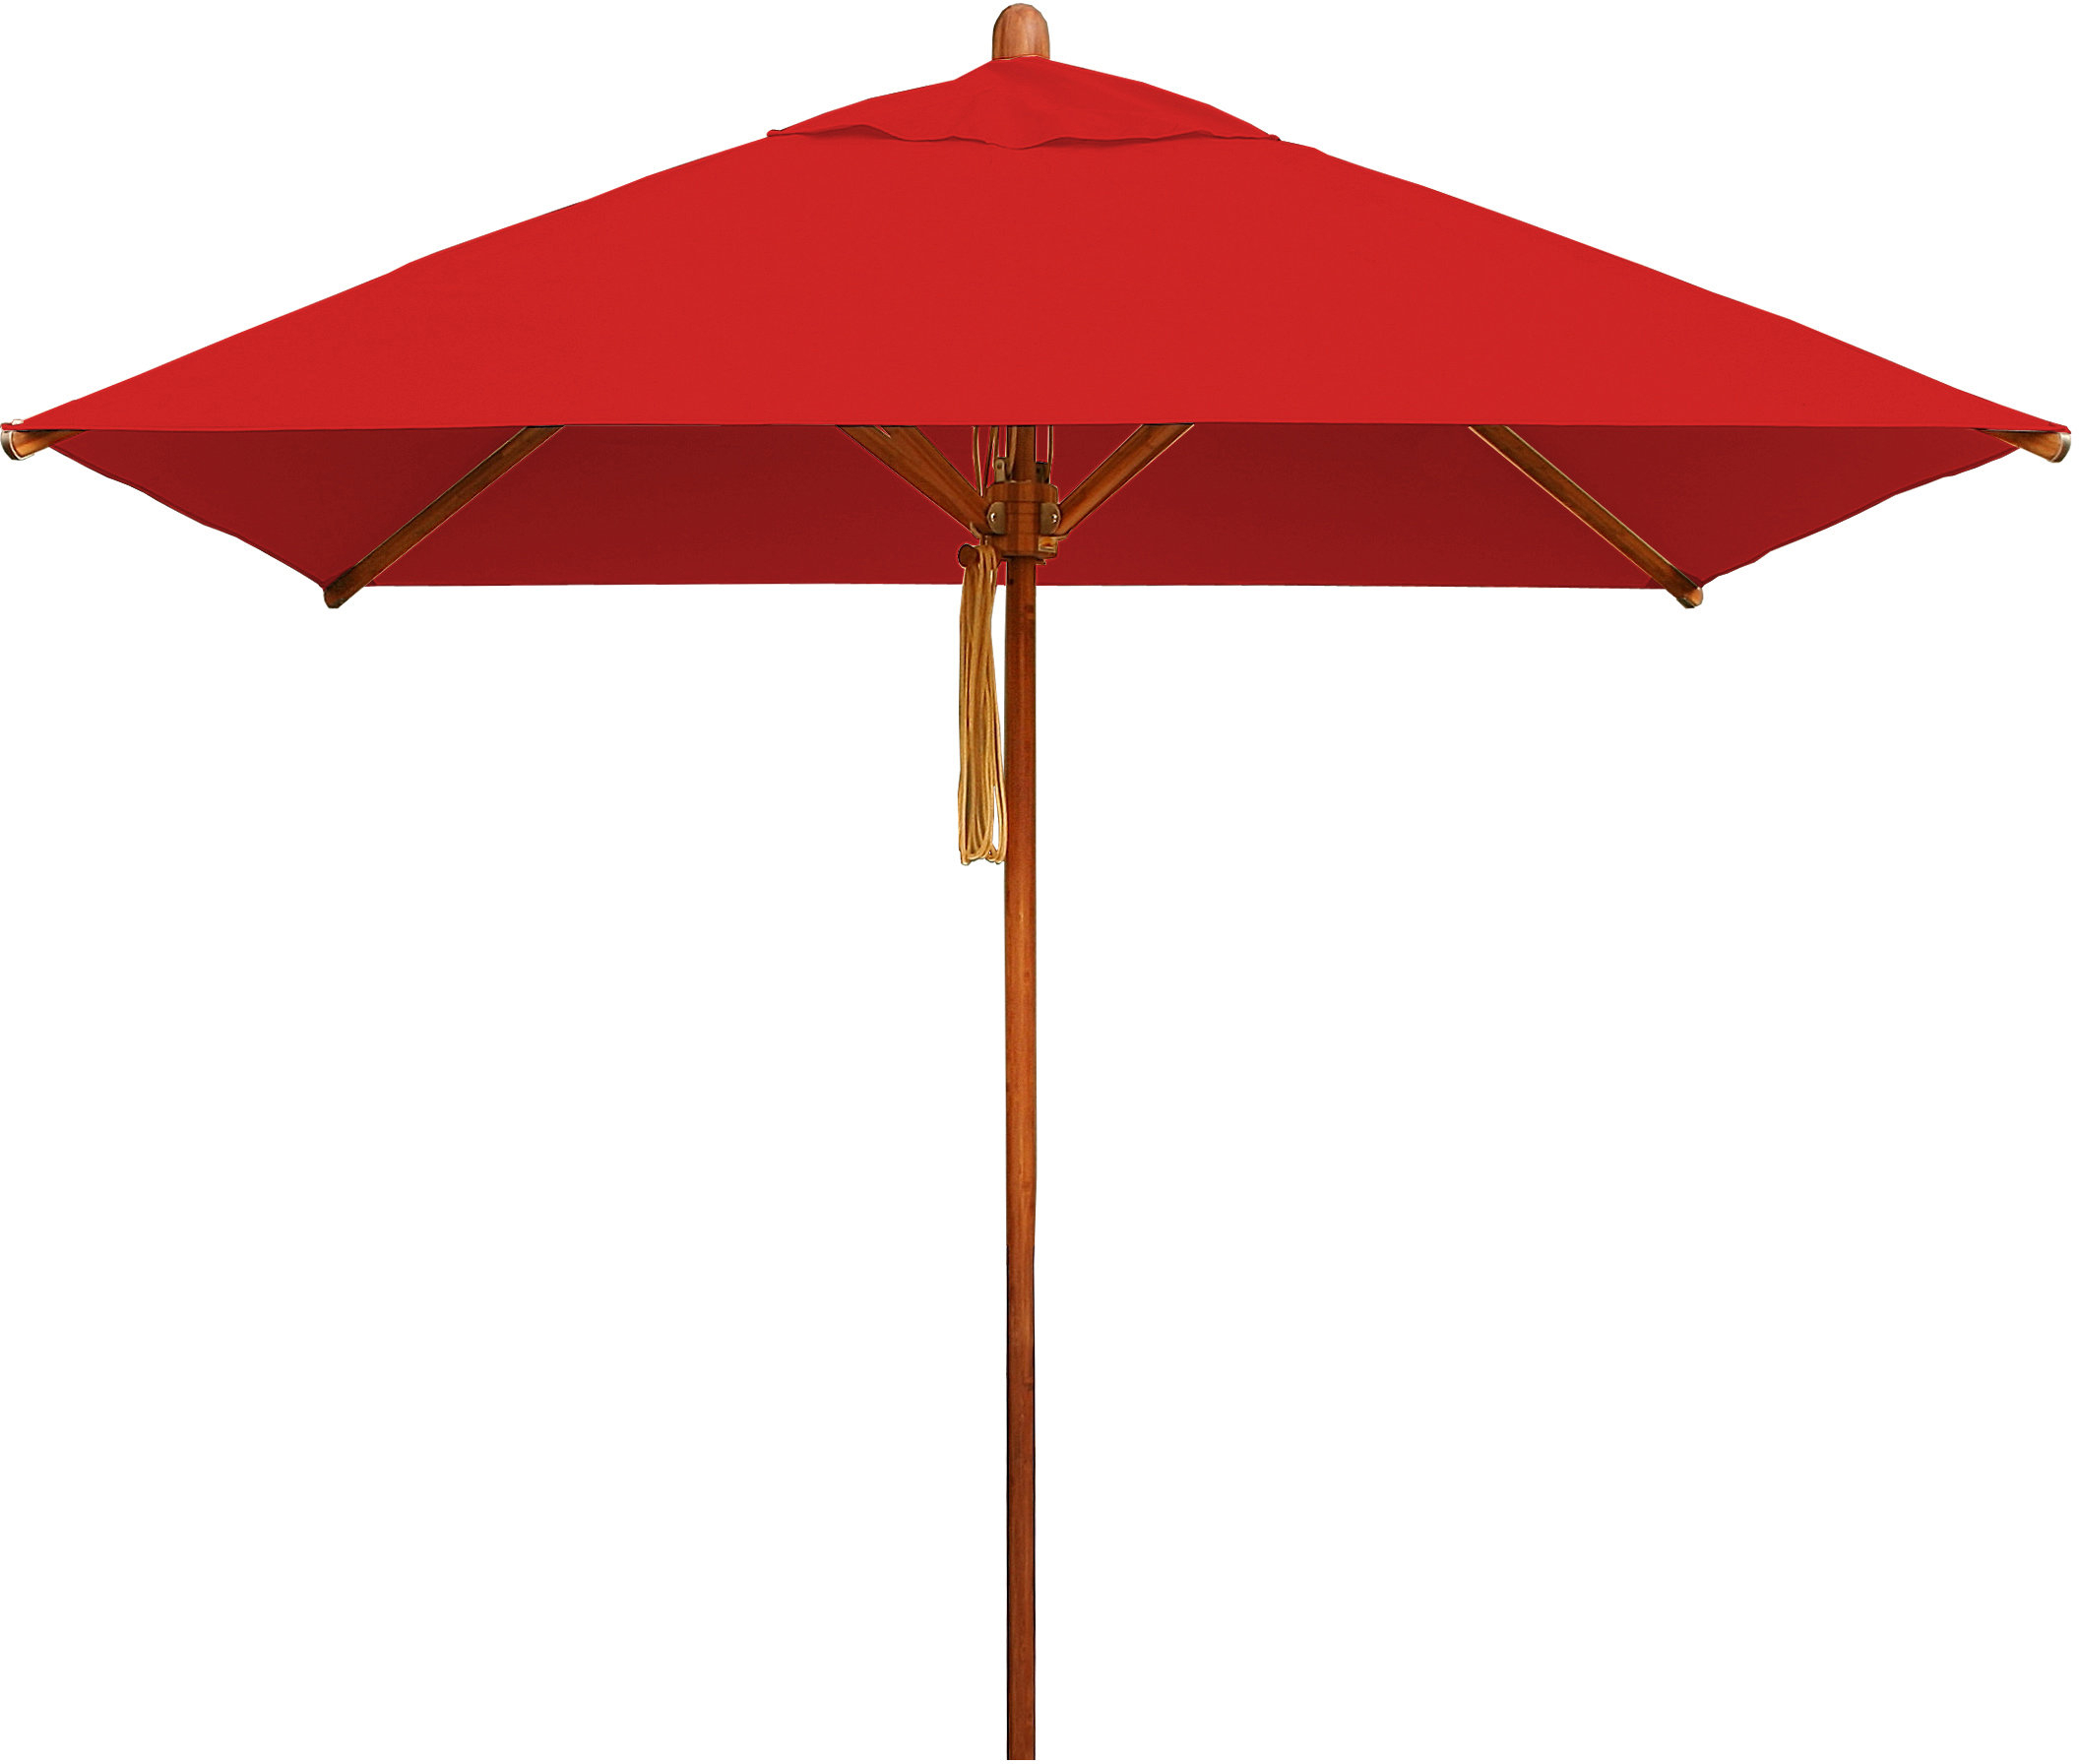 Preferred Bambrella Levante 7' Square Market Umbrella For Hurt Market Umbrellas (View 20 of 20)